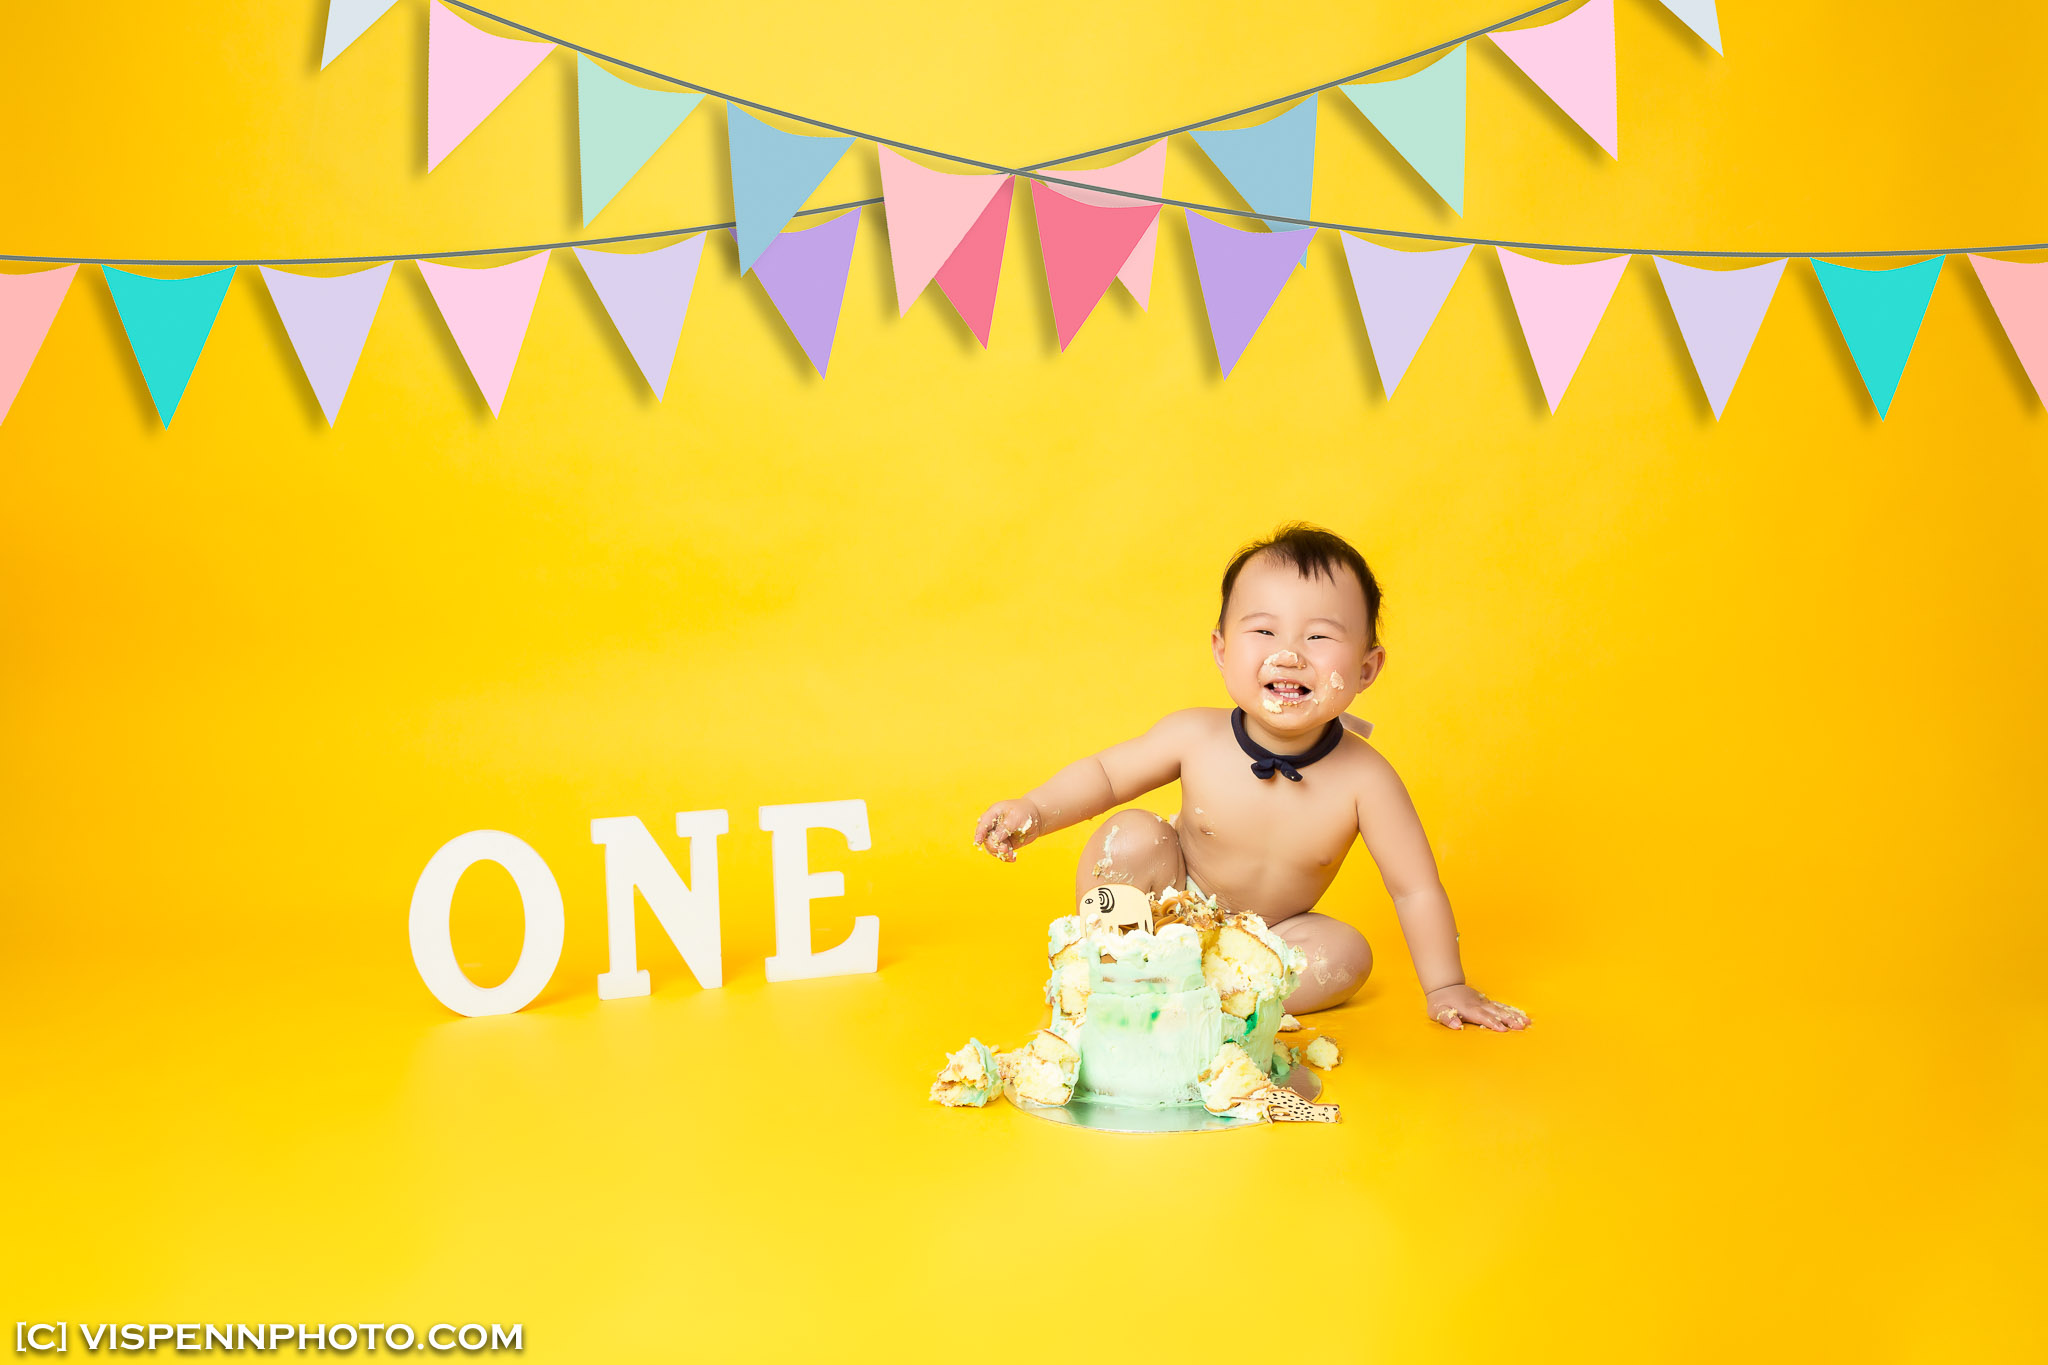 Melbourne Newborn Baby Family Photo BaoBao VISPENN 墨尔本 儿童 宝宝 百天照 满月照 孕妇照 全家福 KIDS CharlesMA 3410 VISPENN